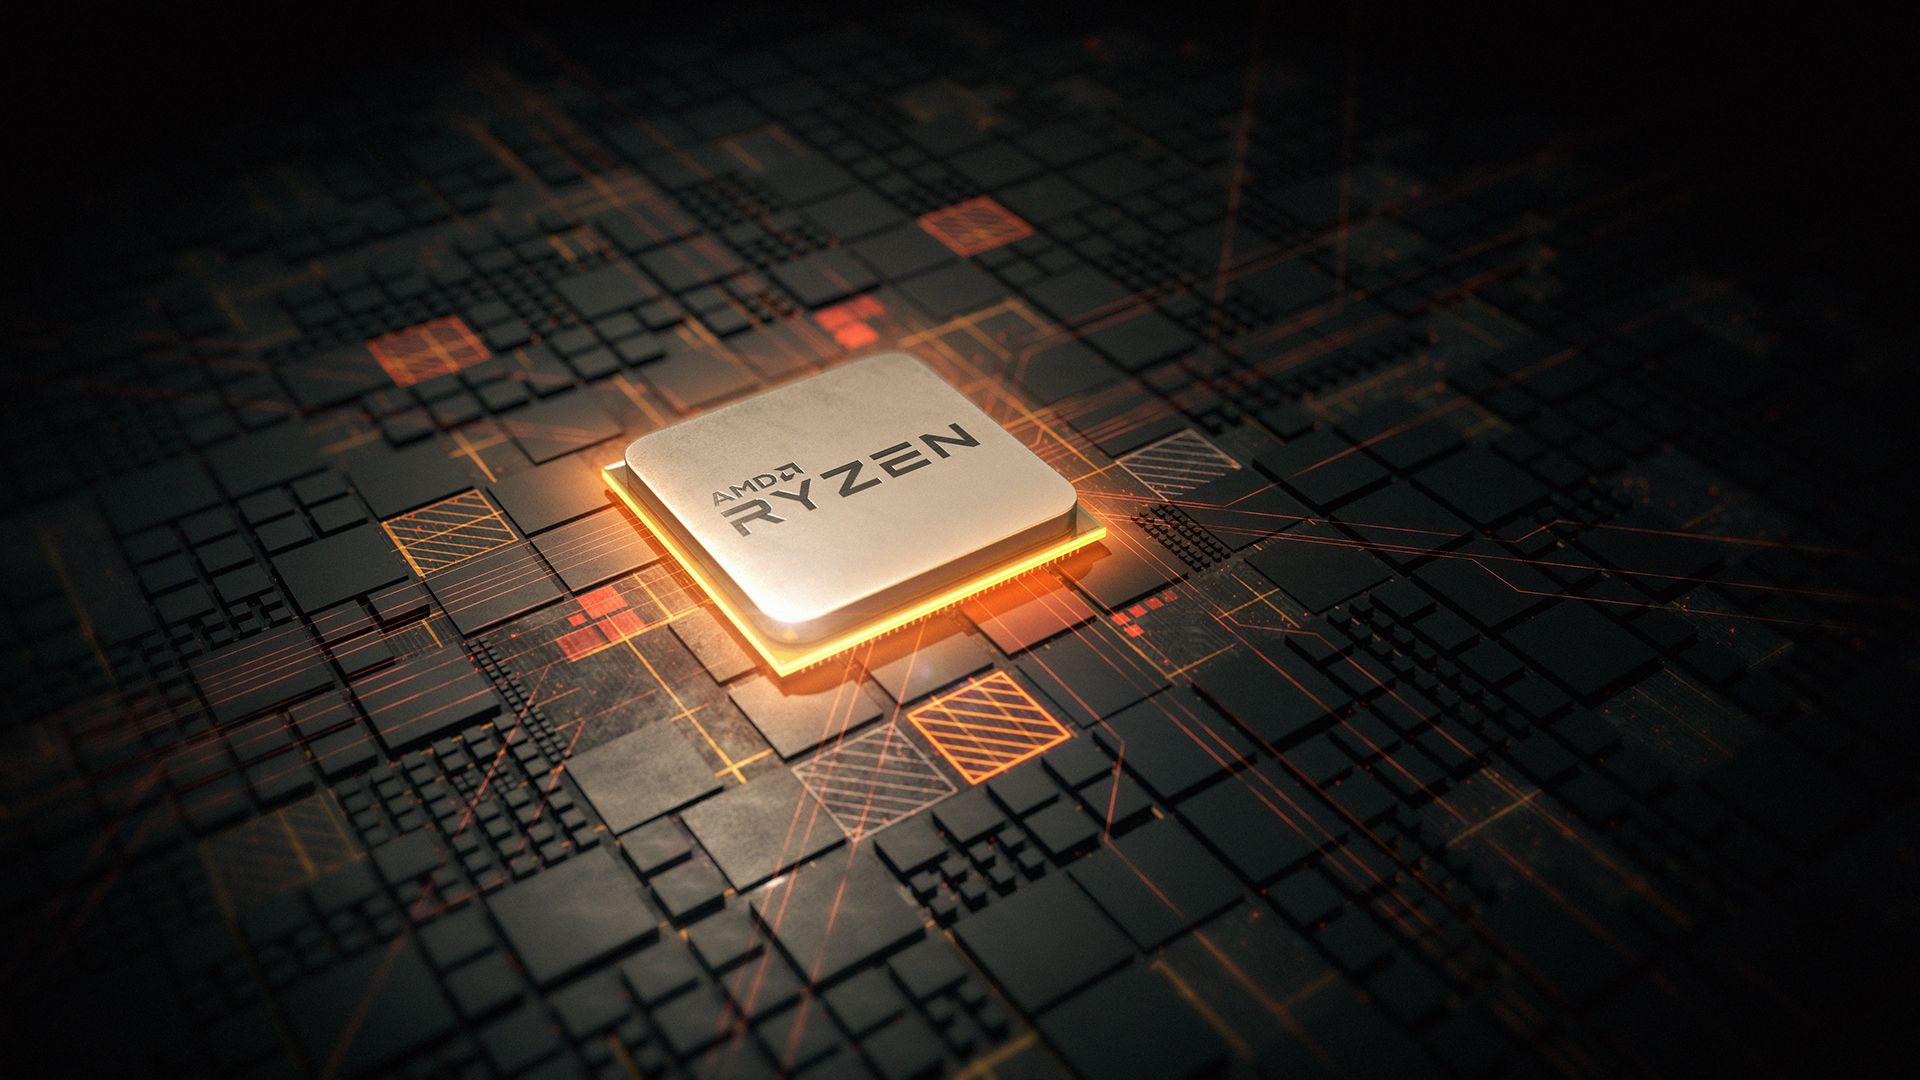 Amd Ryzen 3rd Generation Processor Spotted With 12 Cores And 24